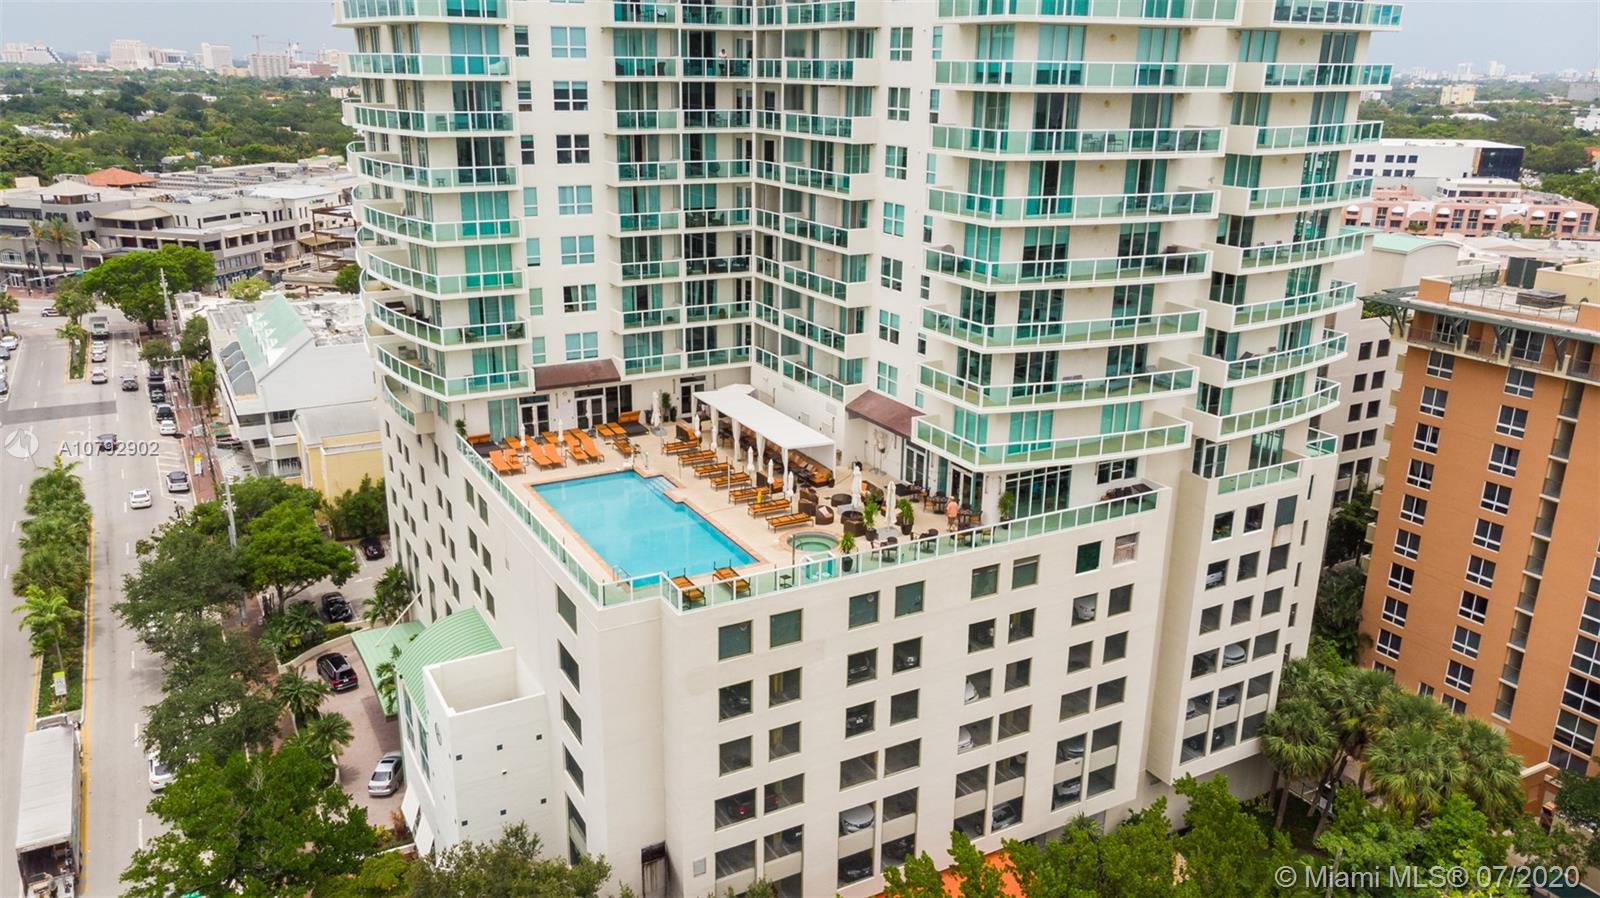 Unique opportunity to own a unit in Hotel Arya at the heart of Coconut Grove! View of the famous Cocowalk from your own balcony. If you are looking for a to own vacation rental for investment, Airbnb or pleasure, look no further than this 1 bedroom and 1.5 bathroom unit at a highly desirable location. The furnished unit features a kitchen with granite countertops and pantry, balcony, modern finishes in bathrooms. The hotel features a gym, valet parking, pool, restaurants, bar, cleaning service and more. Enjoy the views of the beach from the gorgeous rooftop pool. Walking distance to world-class entertainment, shopping, dining art and more. 20 minutes from the Miami Airport and easy access to Dixie Highway. This building was created with contemporary decorations and luxurious living in mind